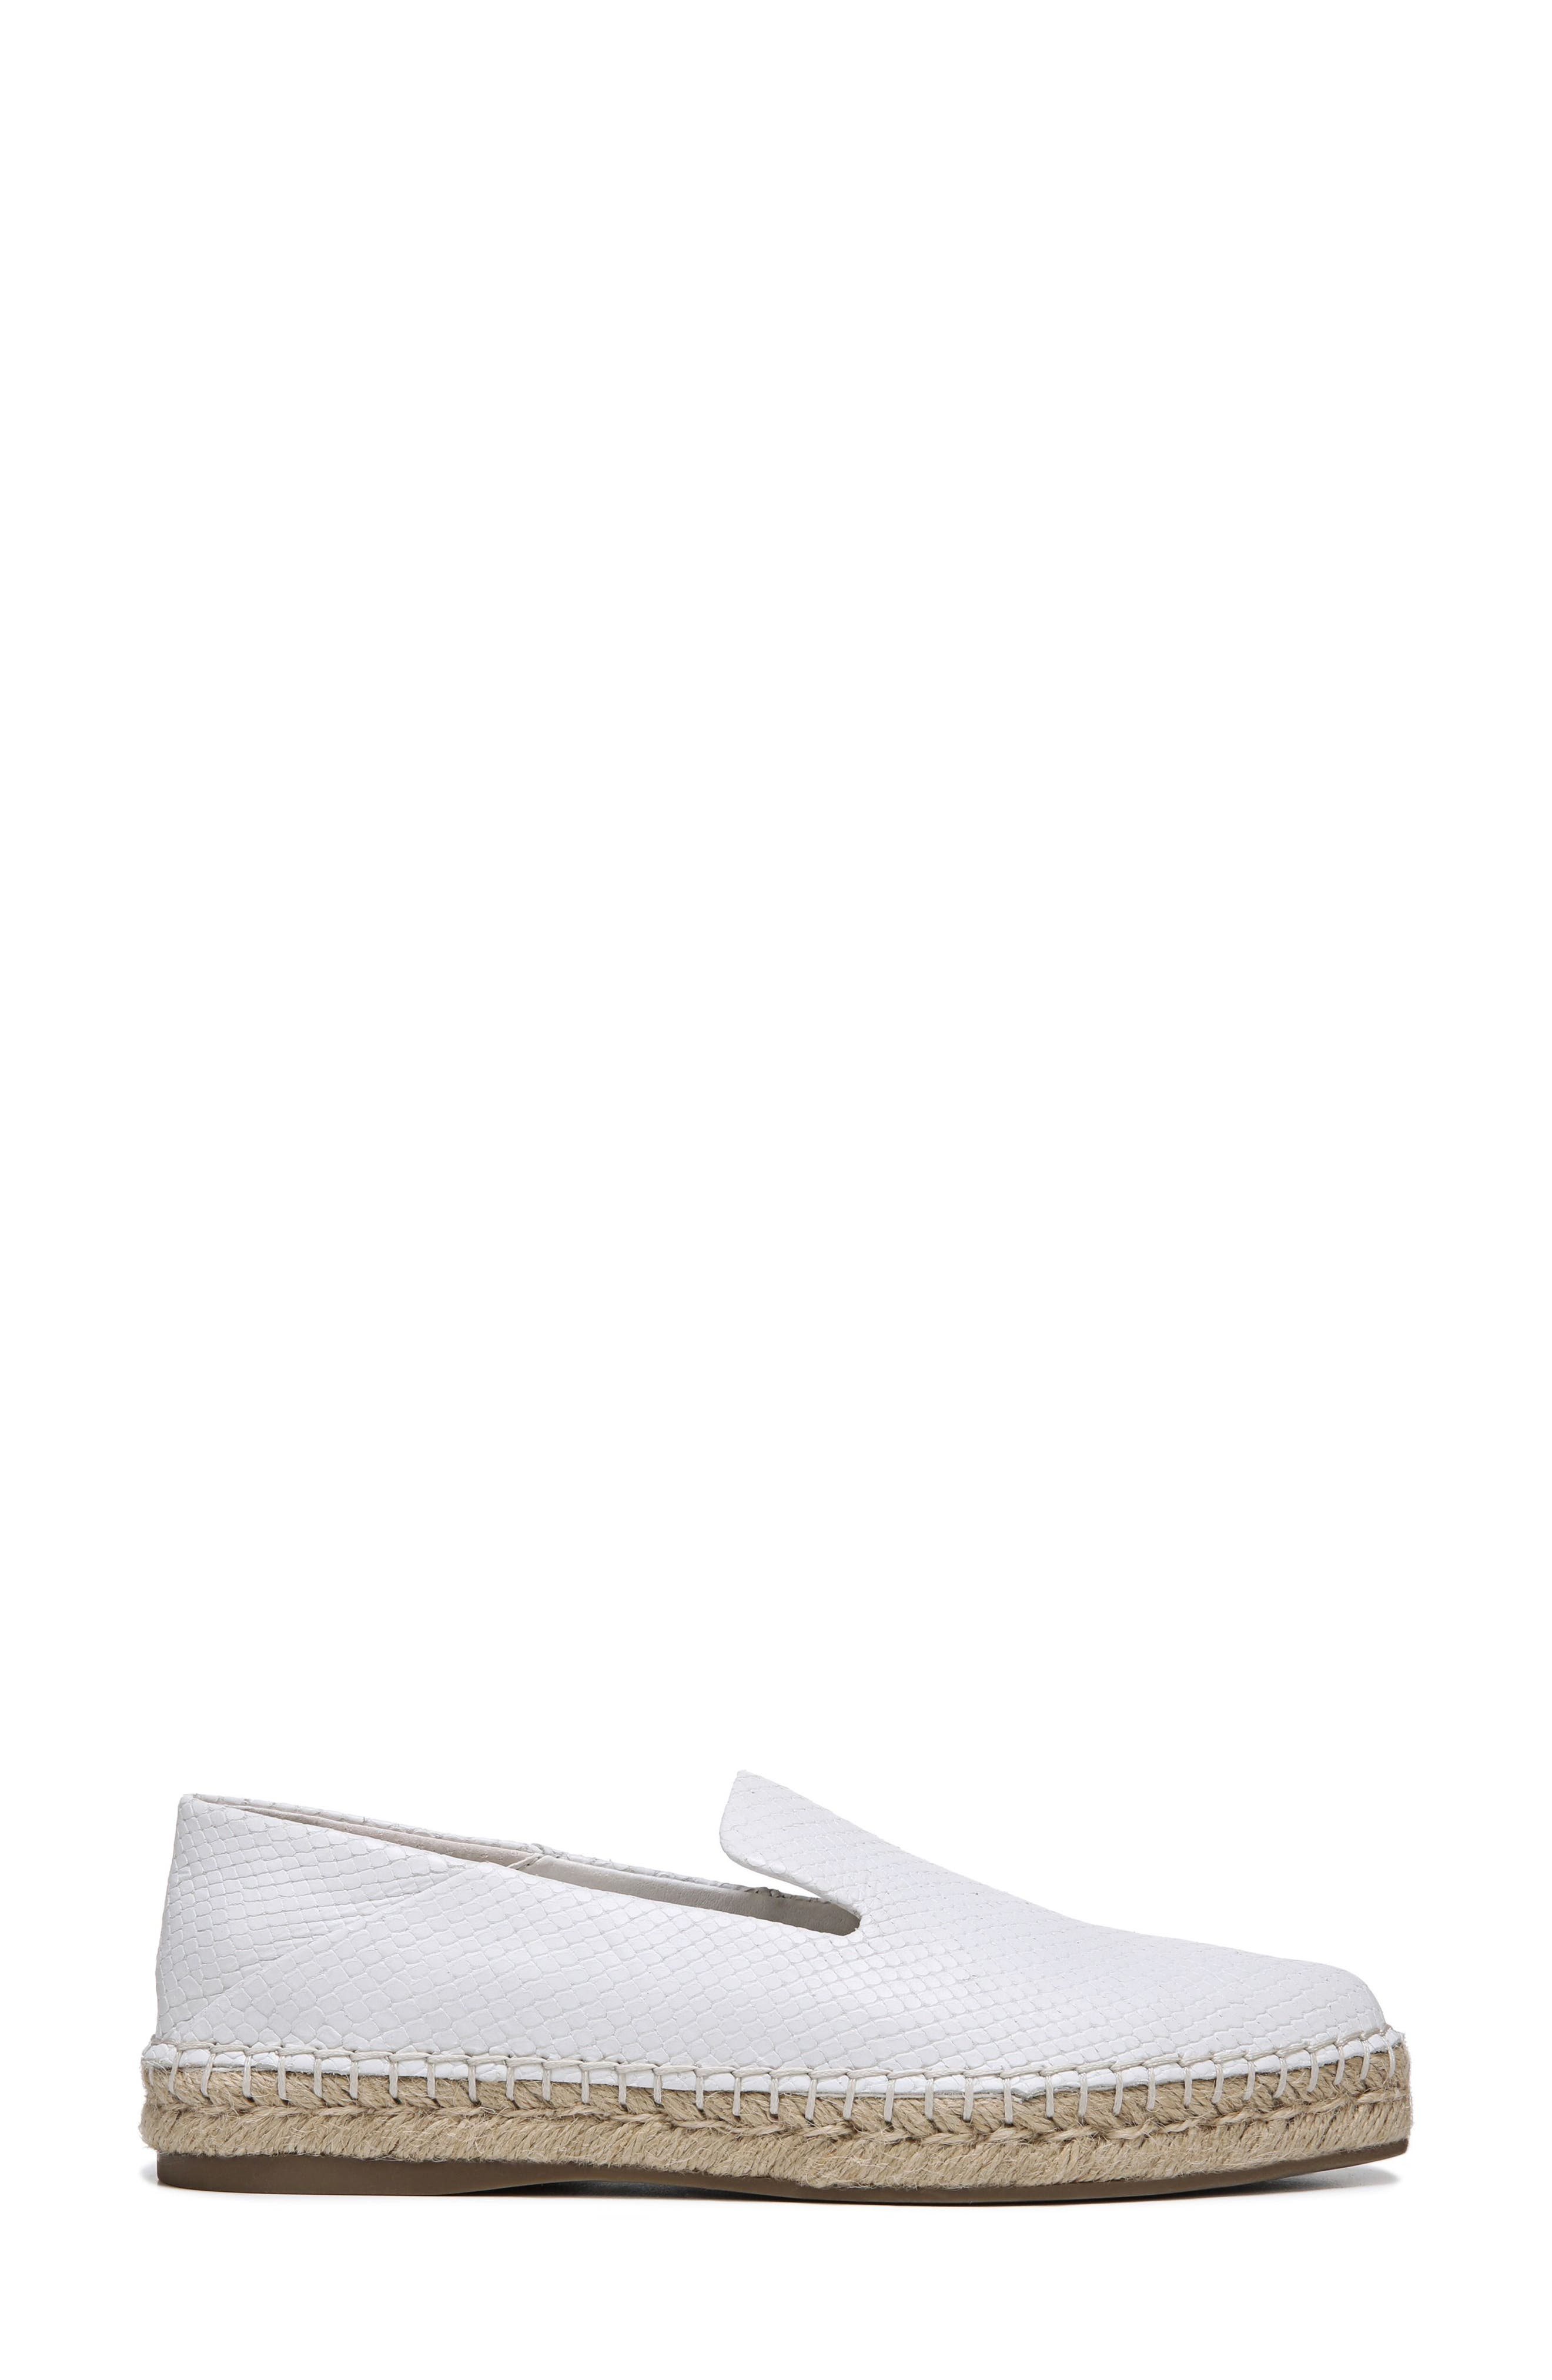 Eviana Espadrille Loafer,                             Alternate thumbnail 3, color,                             Blanca Snake Print Leather